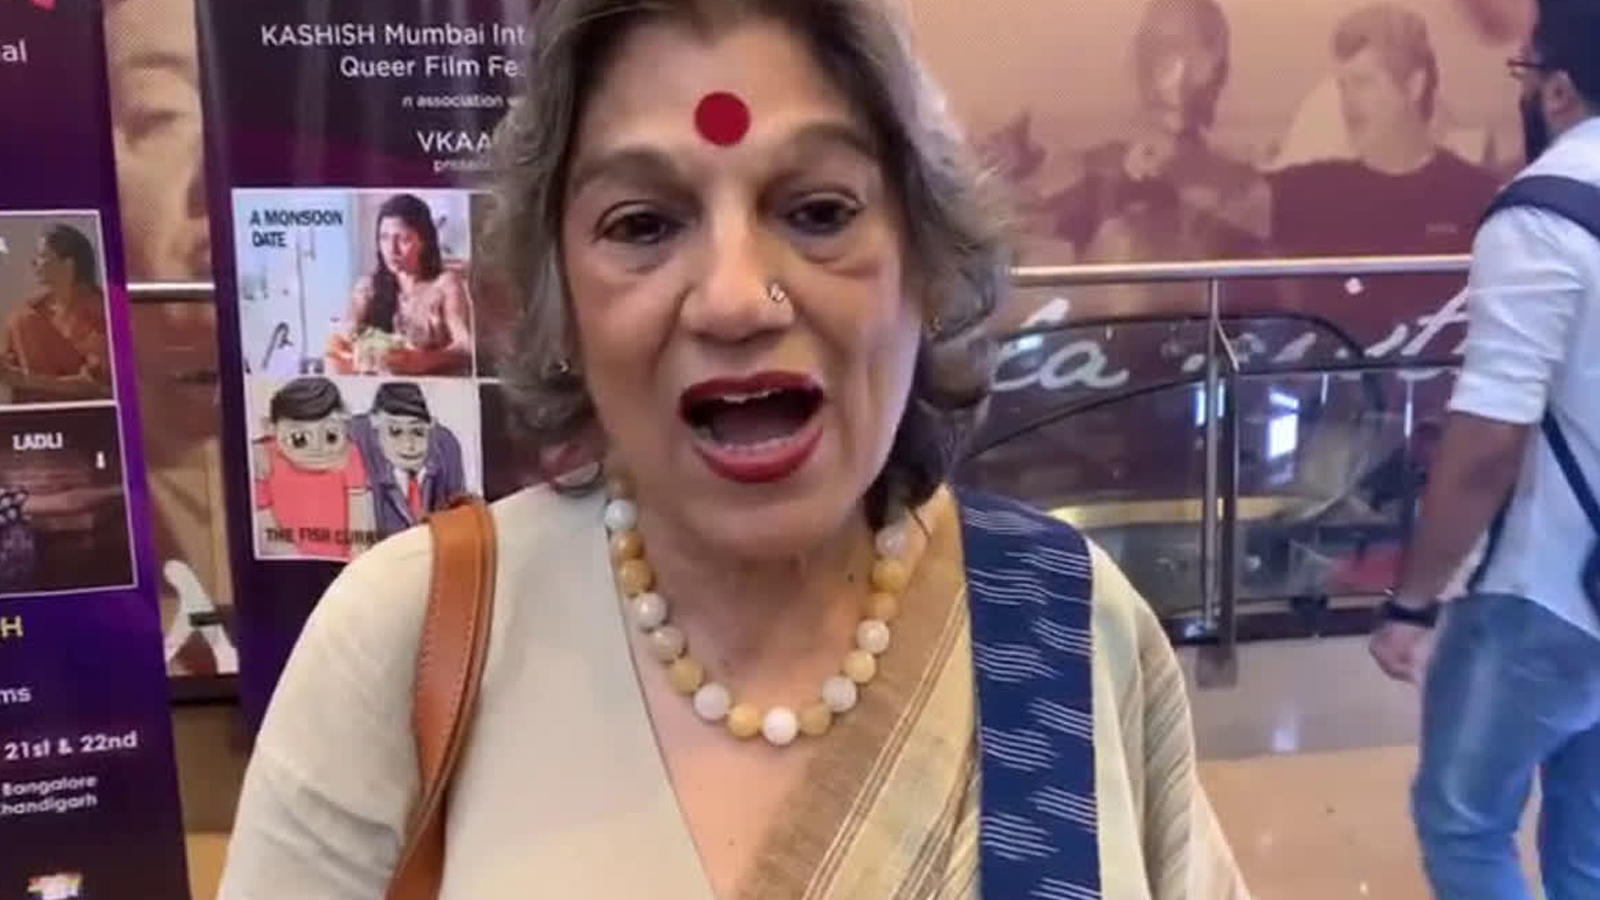 dolly-thakore-talks-about-her-decade-long-association-with-the-queer-film-festival-kashish